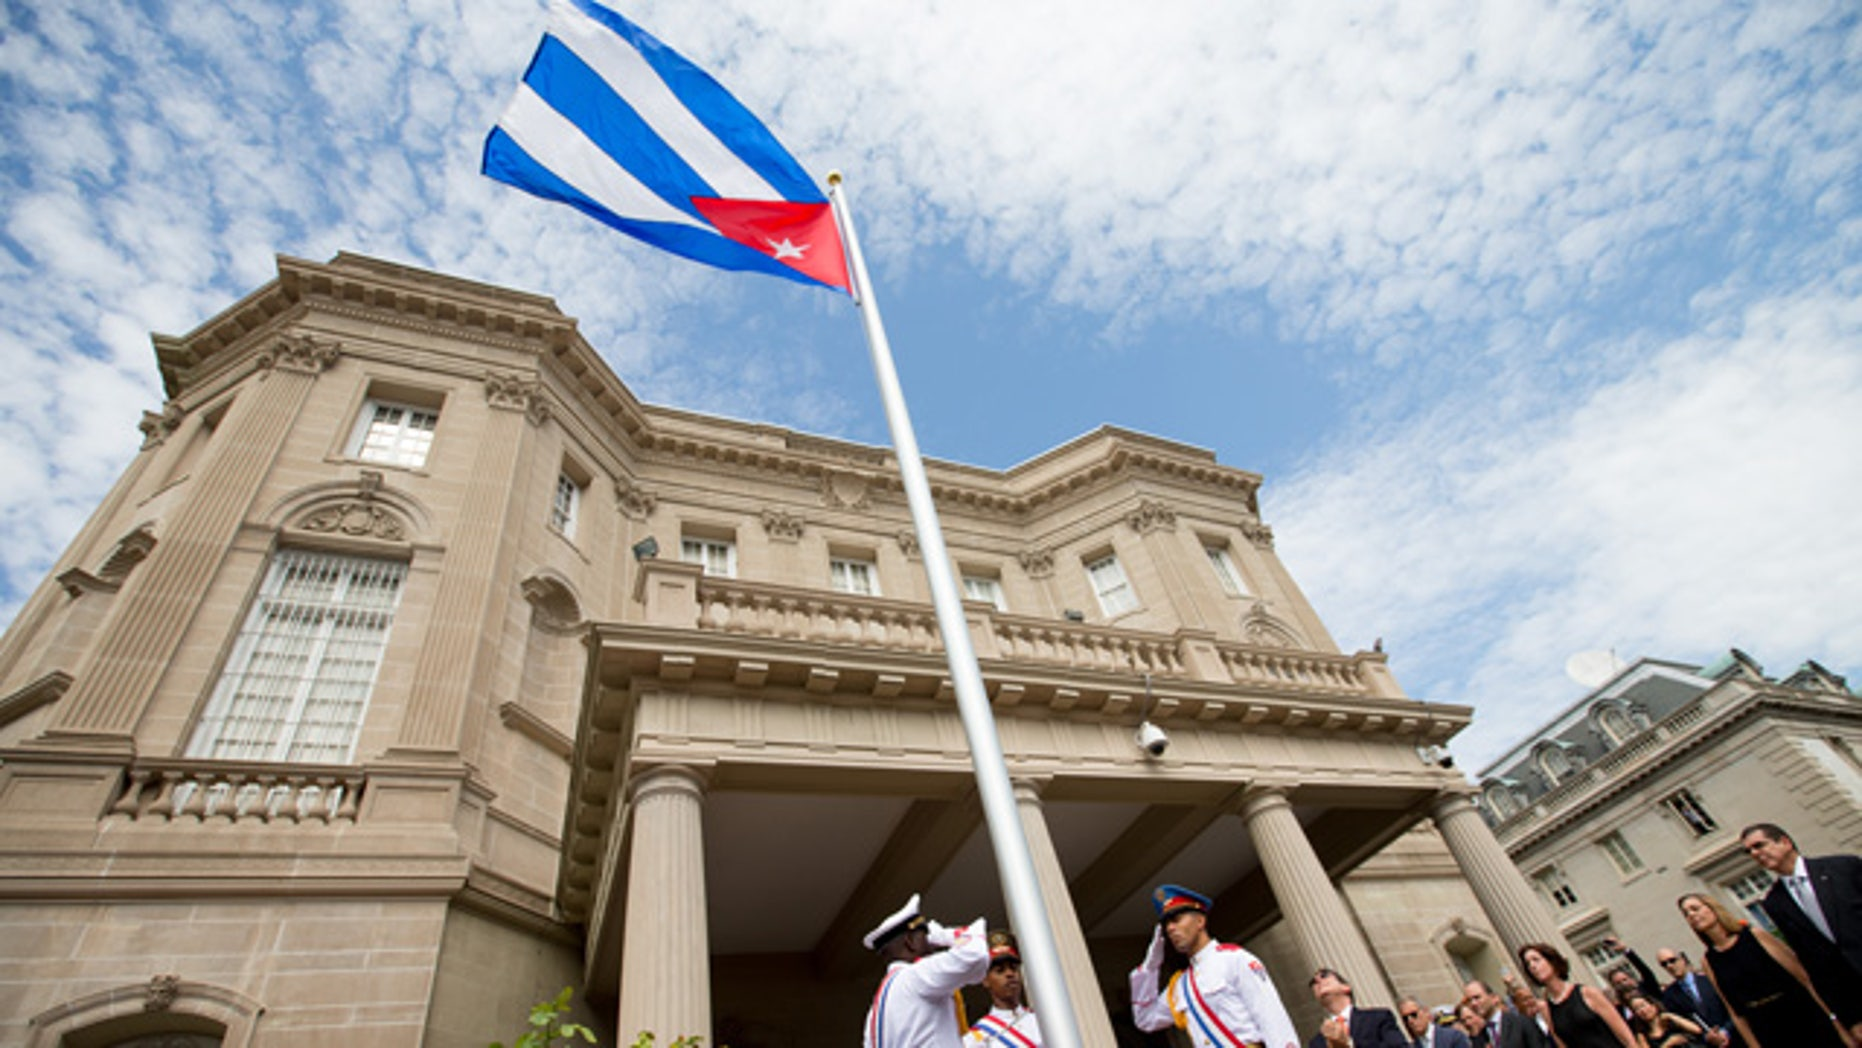 FILE- In this July 20, 2015, file photo, Cuban Foreign Minister Bruno Rodriguez, right of center, applauds with other dignitaries after raising the Cuban flag over their new embassy in Washington. (AP Photo/Andrew Harnik, Pool, File)